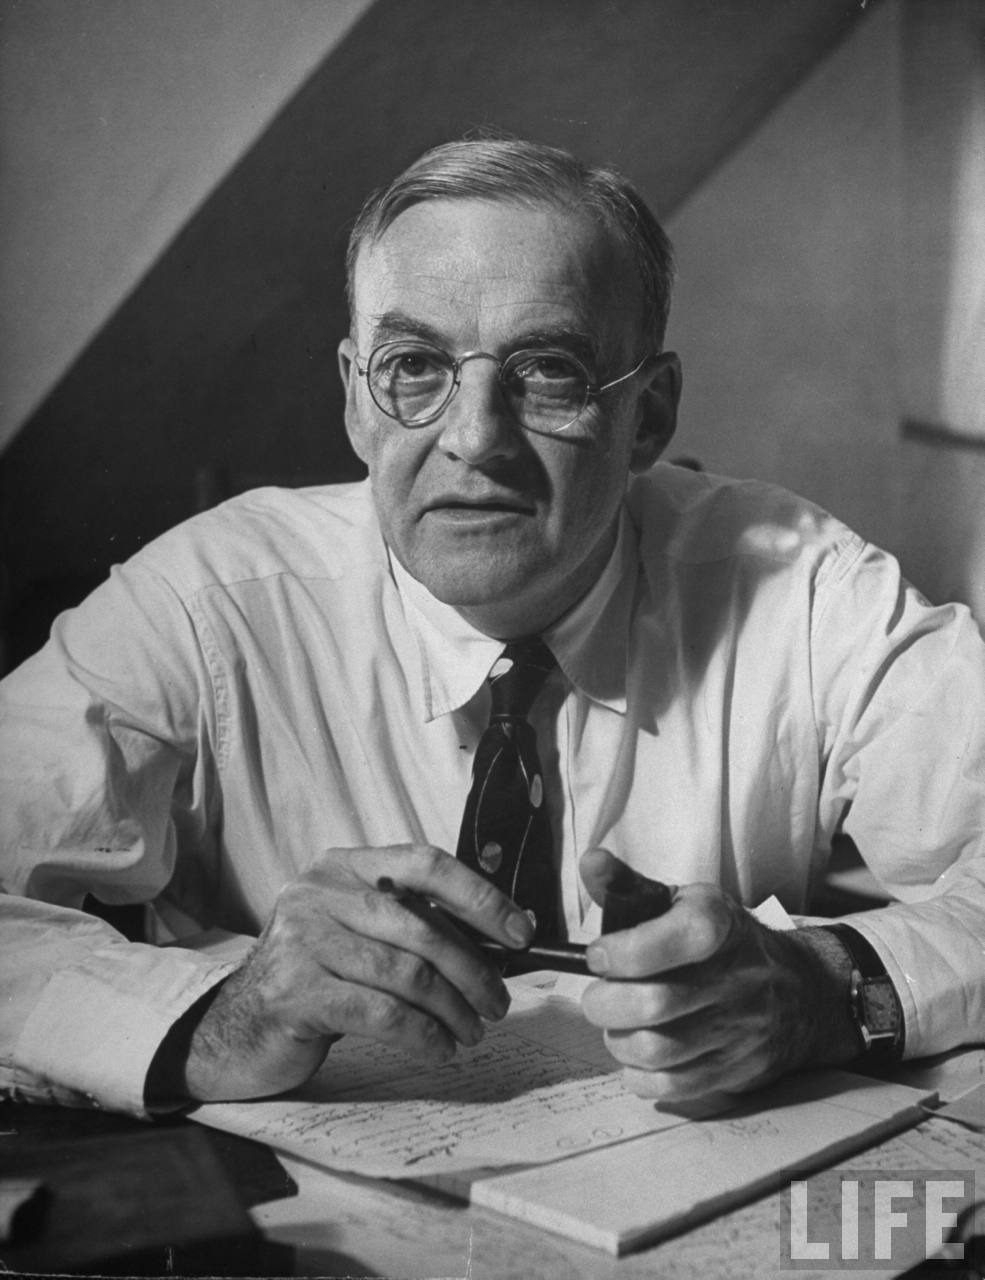 a biography of john foster dulles and his career John foster dulles and his brother, allen, were scions of the american establishment their grandfather john watson foster served as secretary of state.